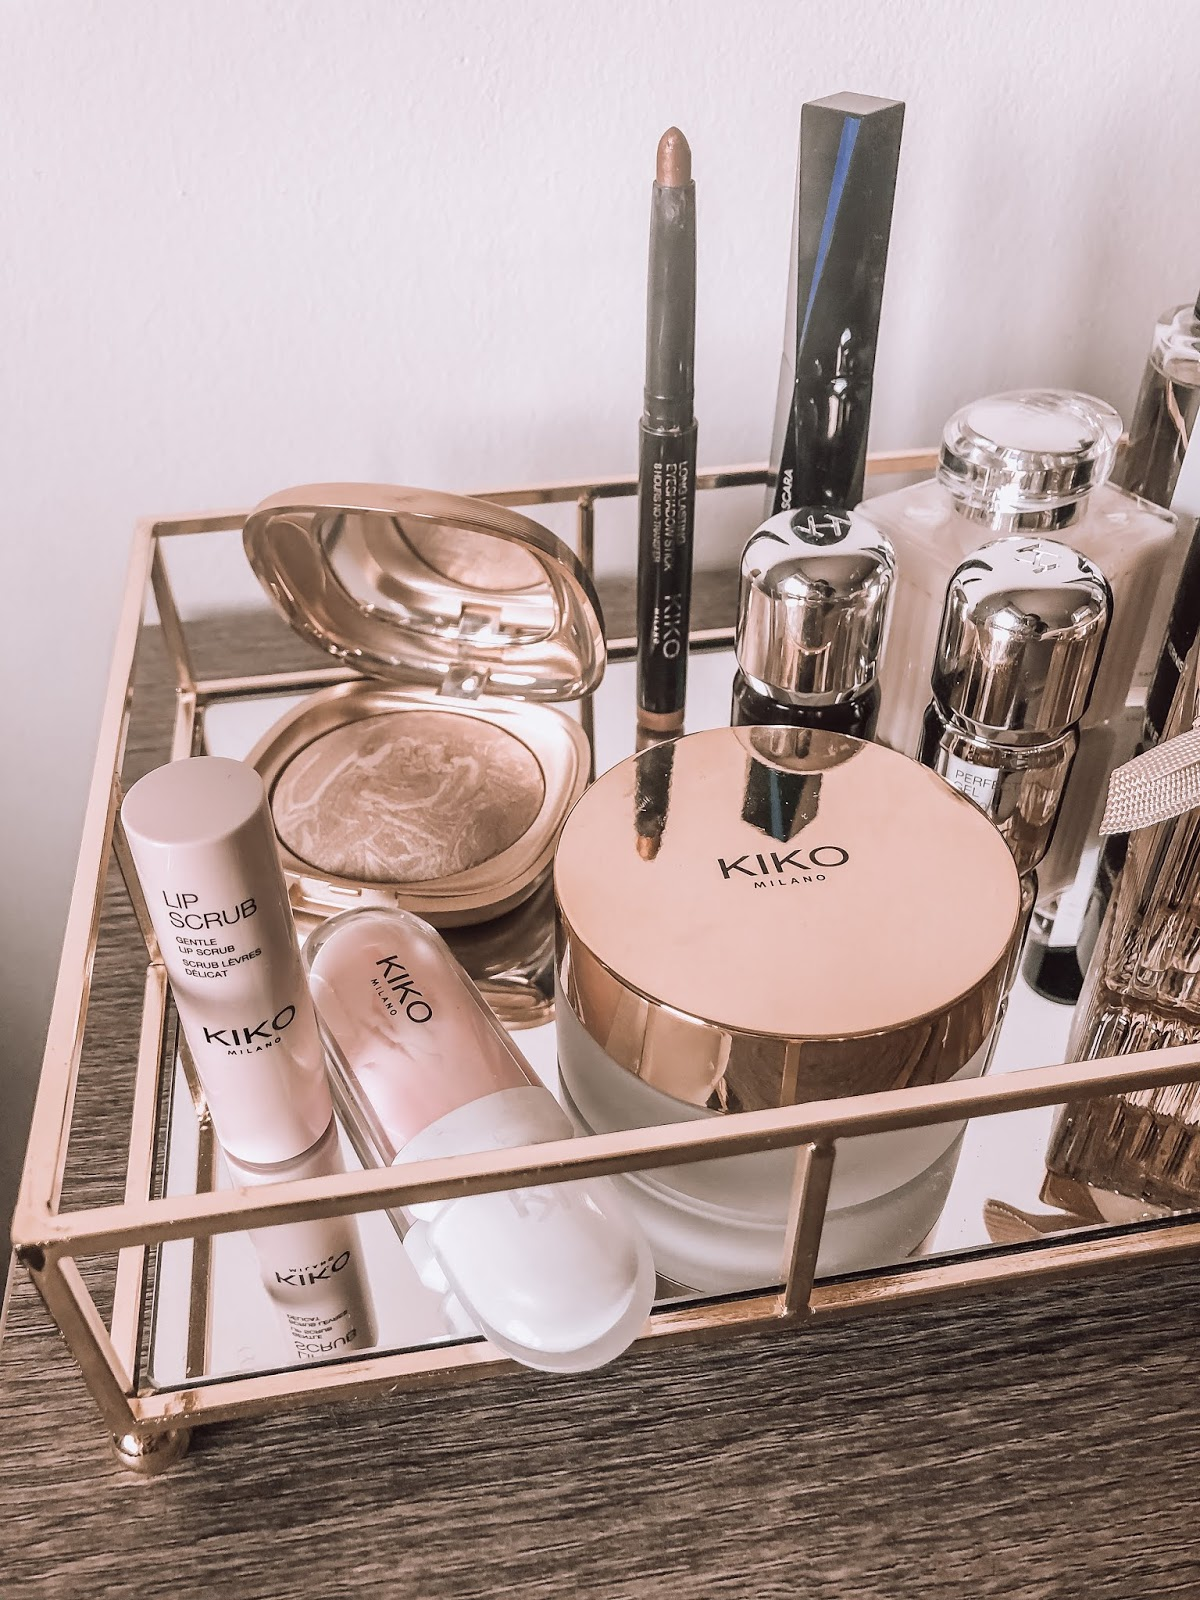 kiko haul favorites, best of kiko, charlotte tilbury magic cream dupe